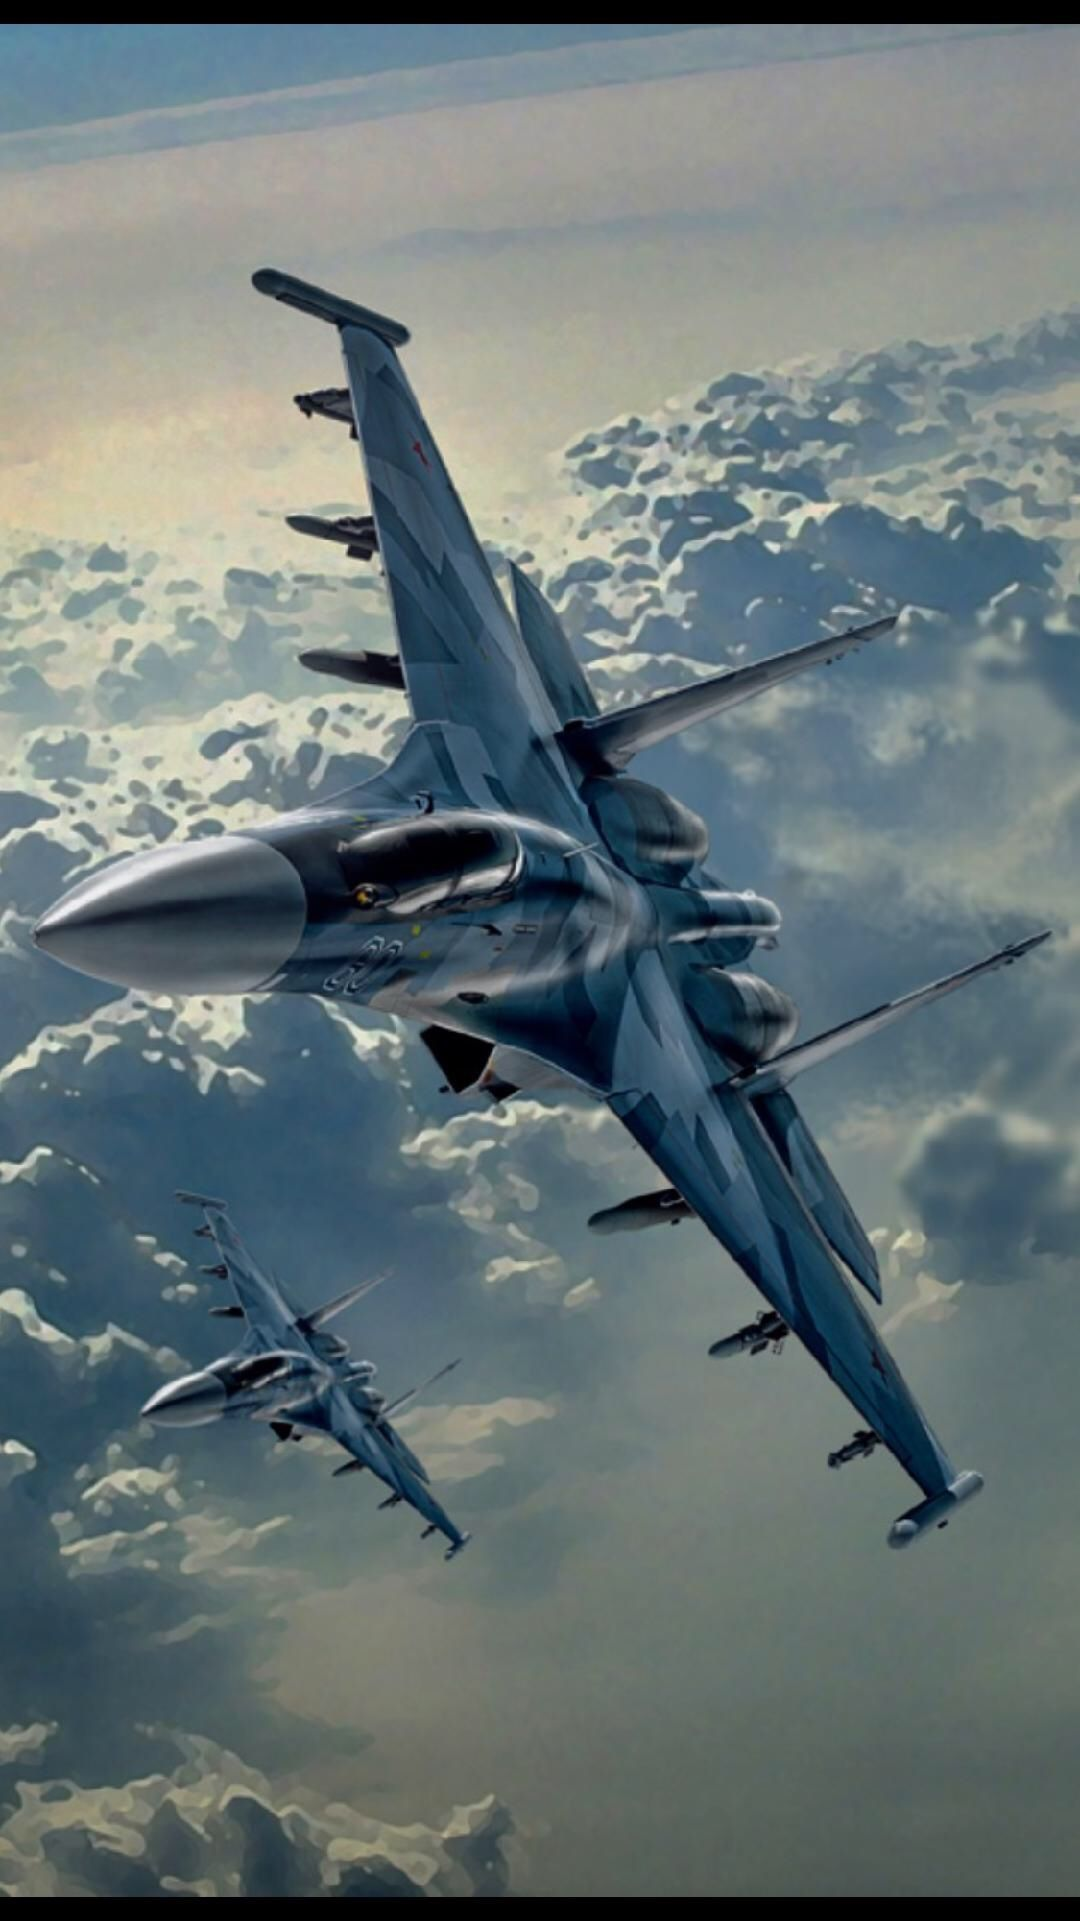 Pin By Davor Gavranovic On Everything Airplanes Helis Jets Etc Air Fighter Fighter Jets Fighter Planes